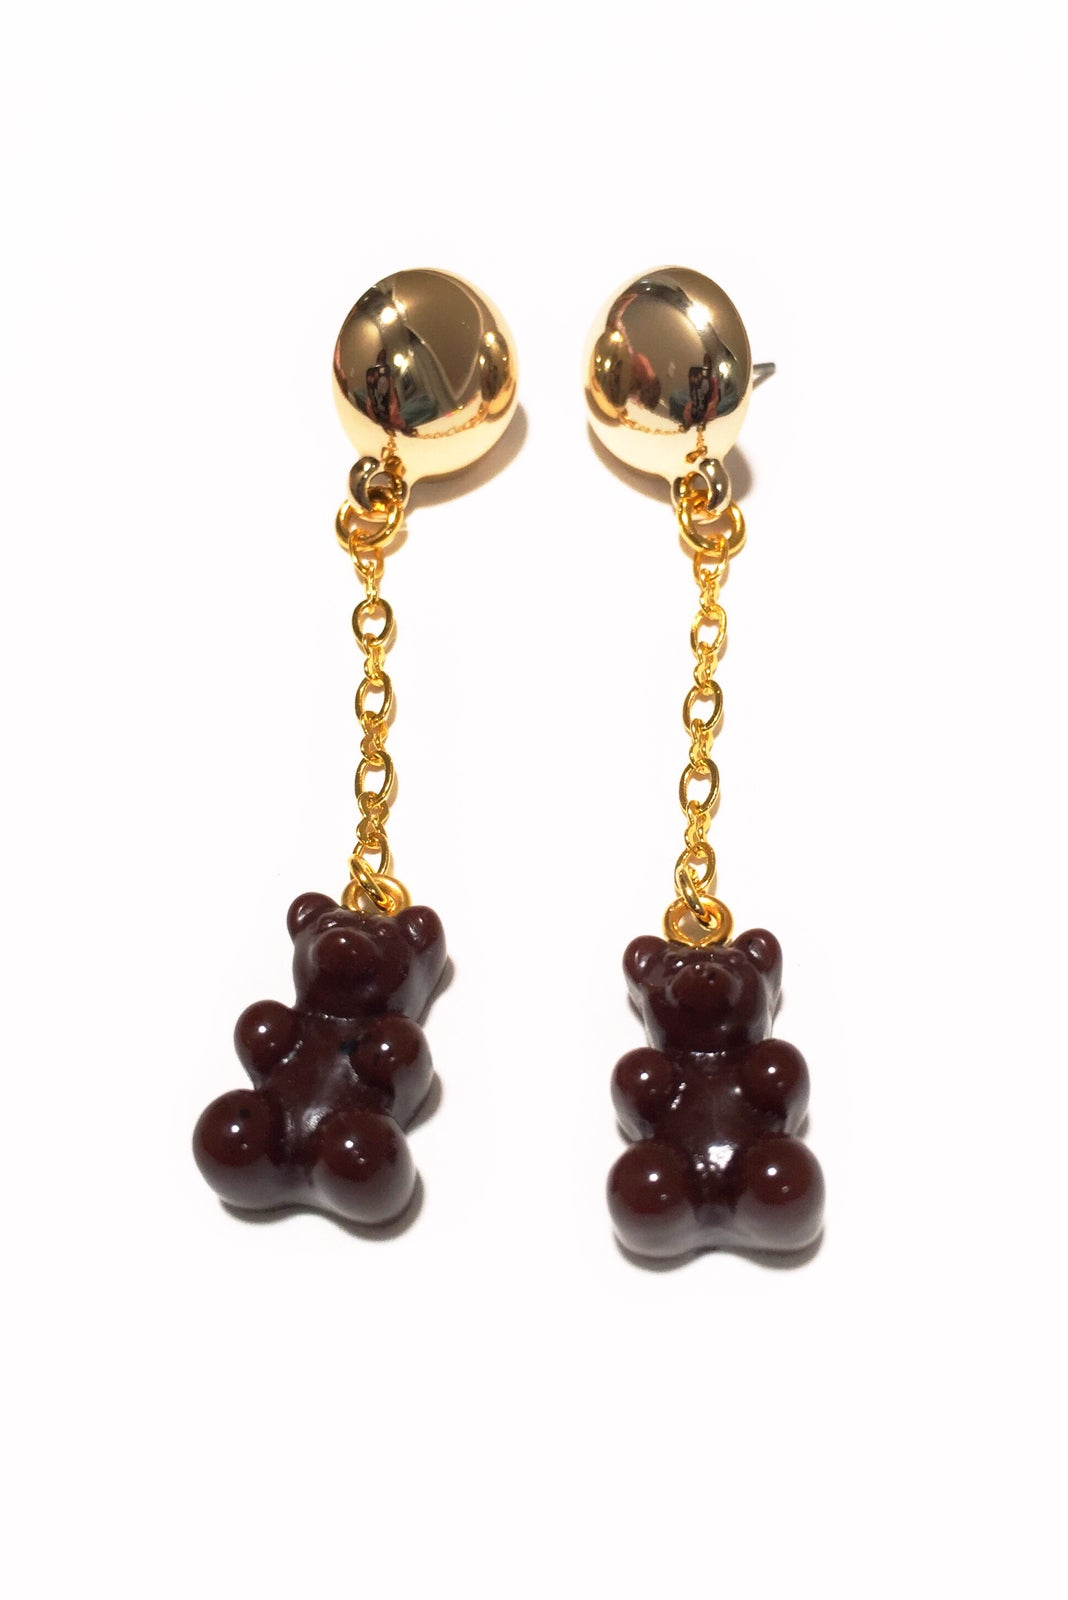 Image of Chocolate Gummy Bear Earrings